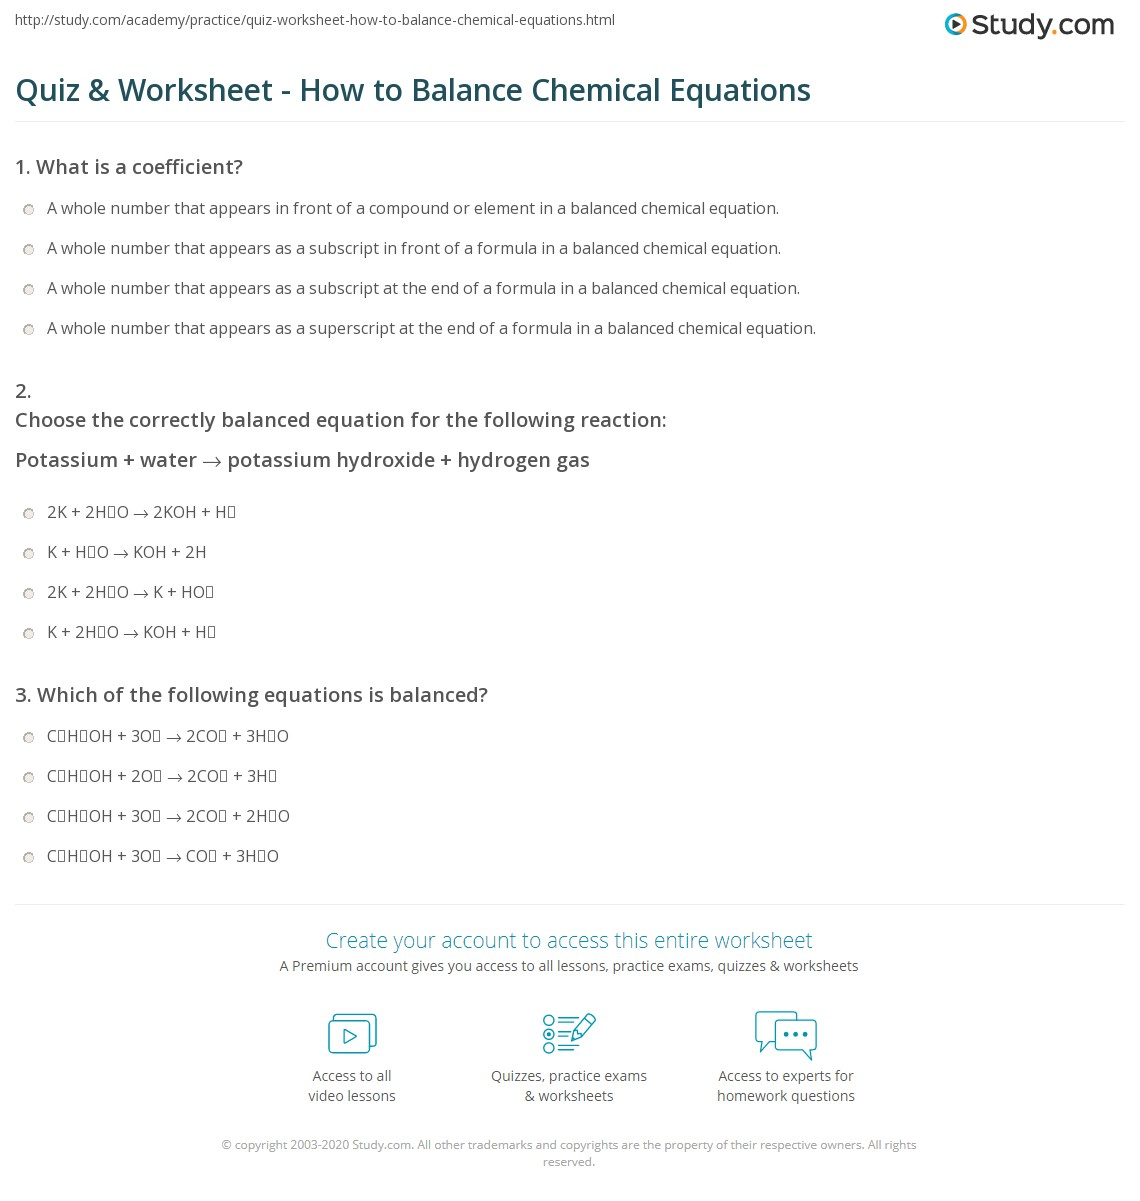 Quiz Worksheet How to Balance Chemical Equations – Balancing Equations Practice Worksheet Answer Key